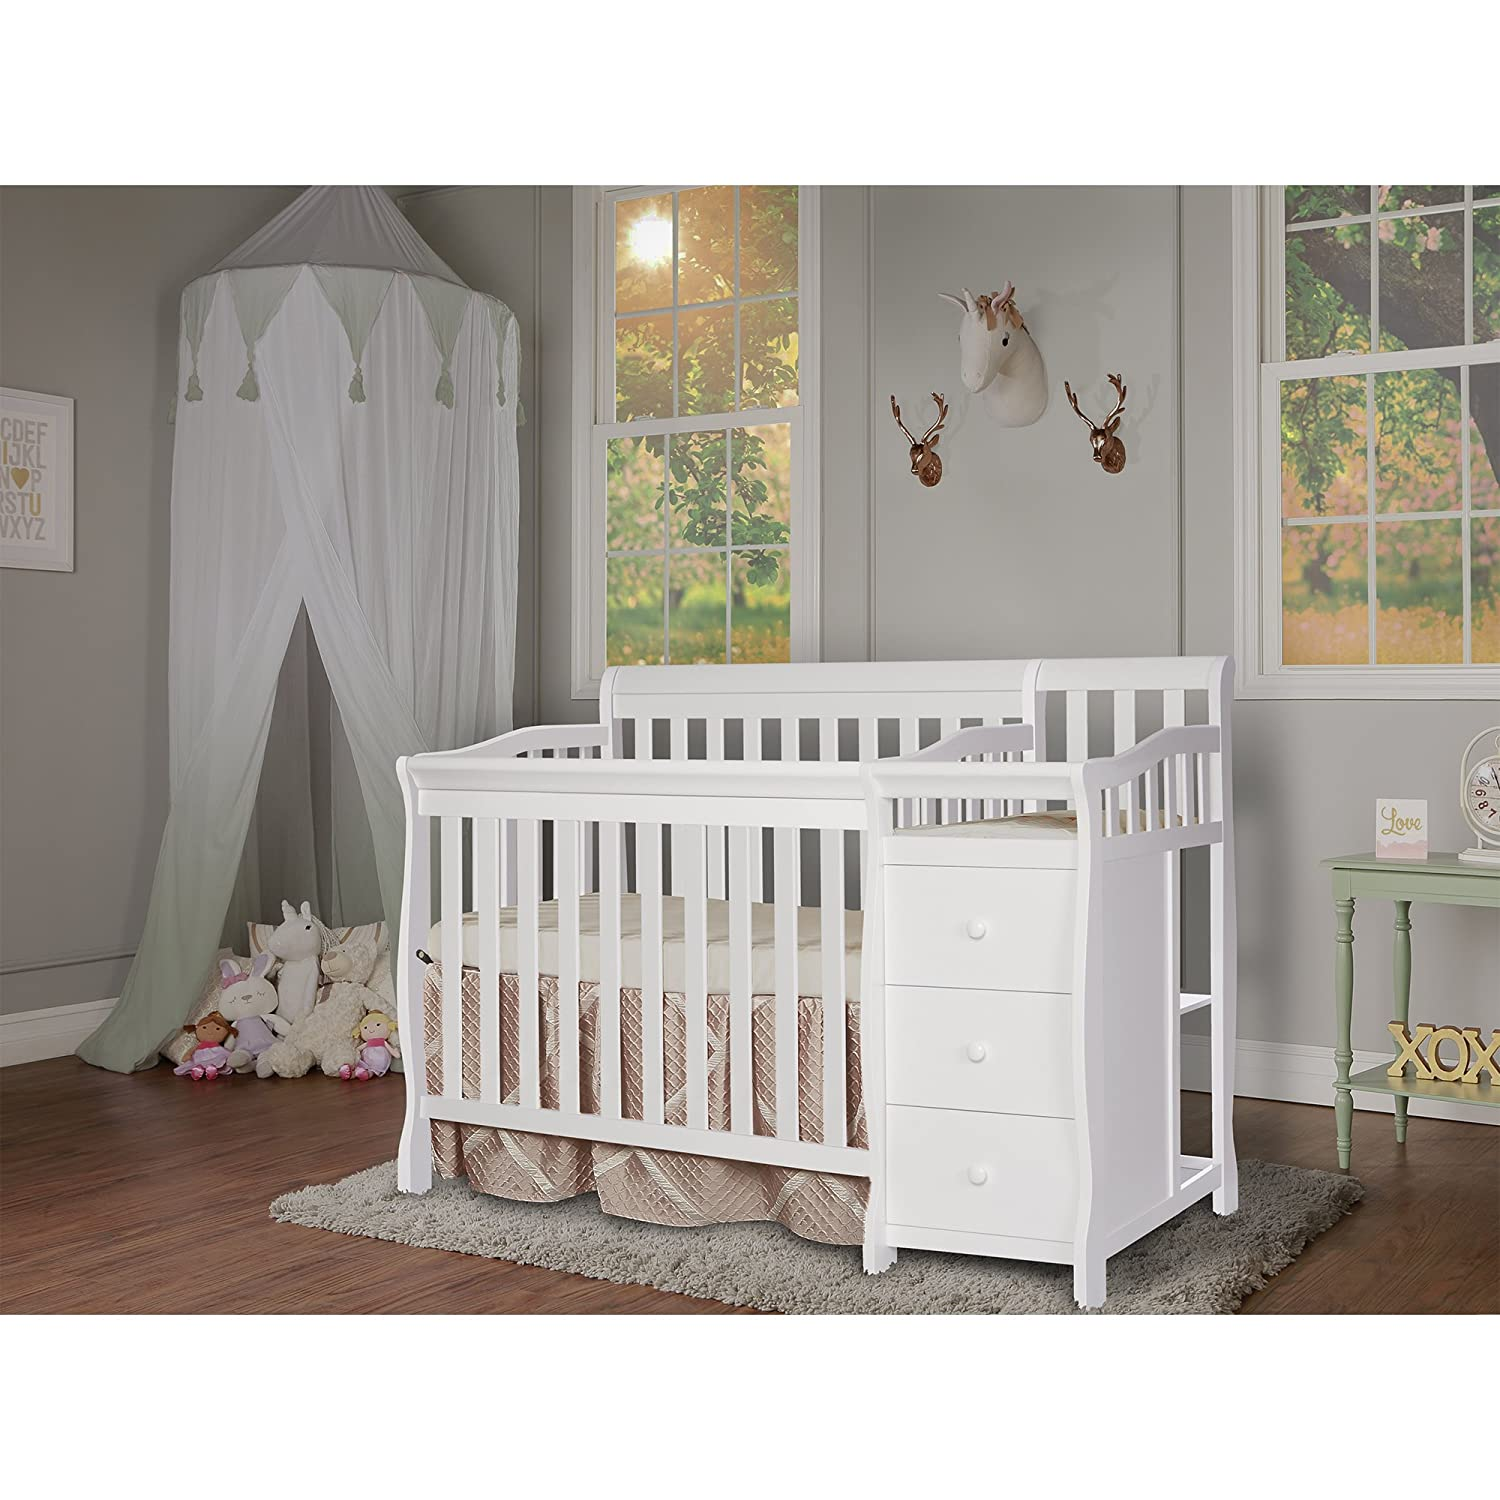 Dream On Me Jayden 4-in-1 Mini Convertible Crib And Changer 629-W